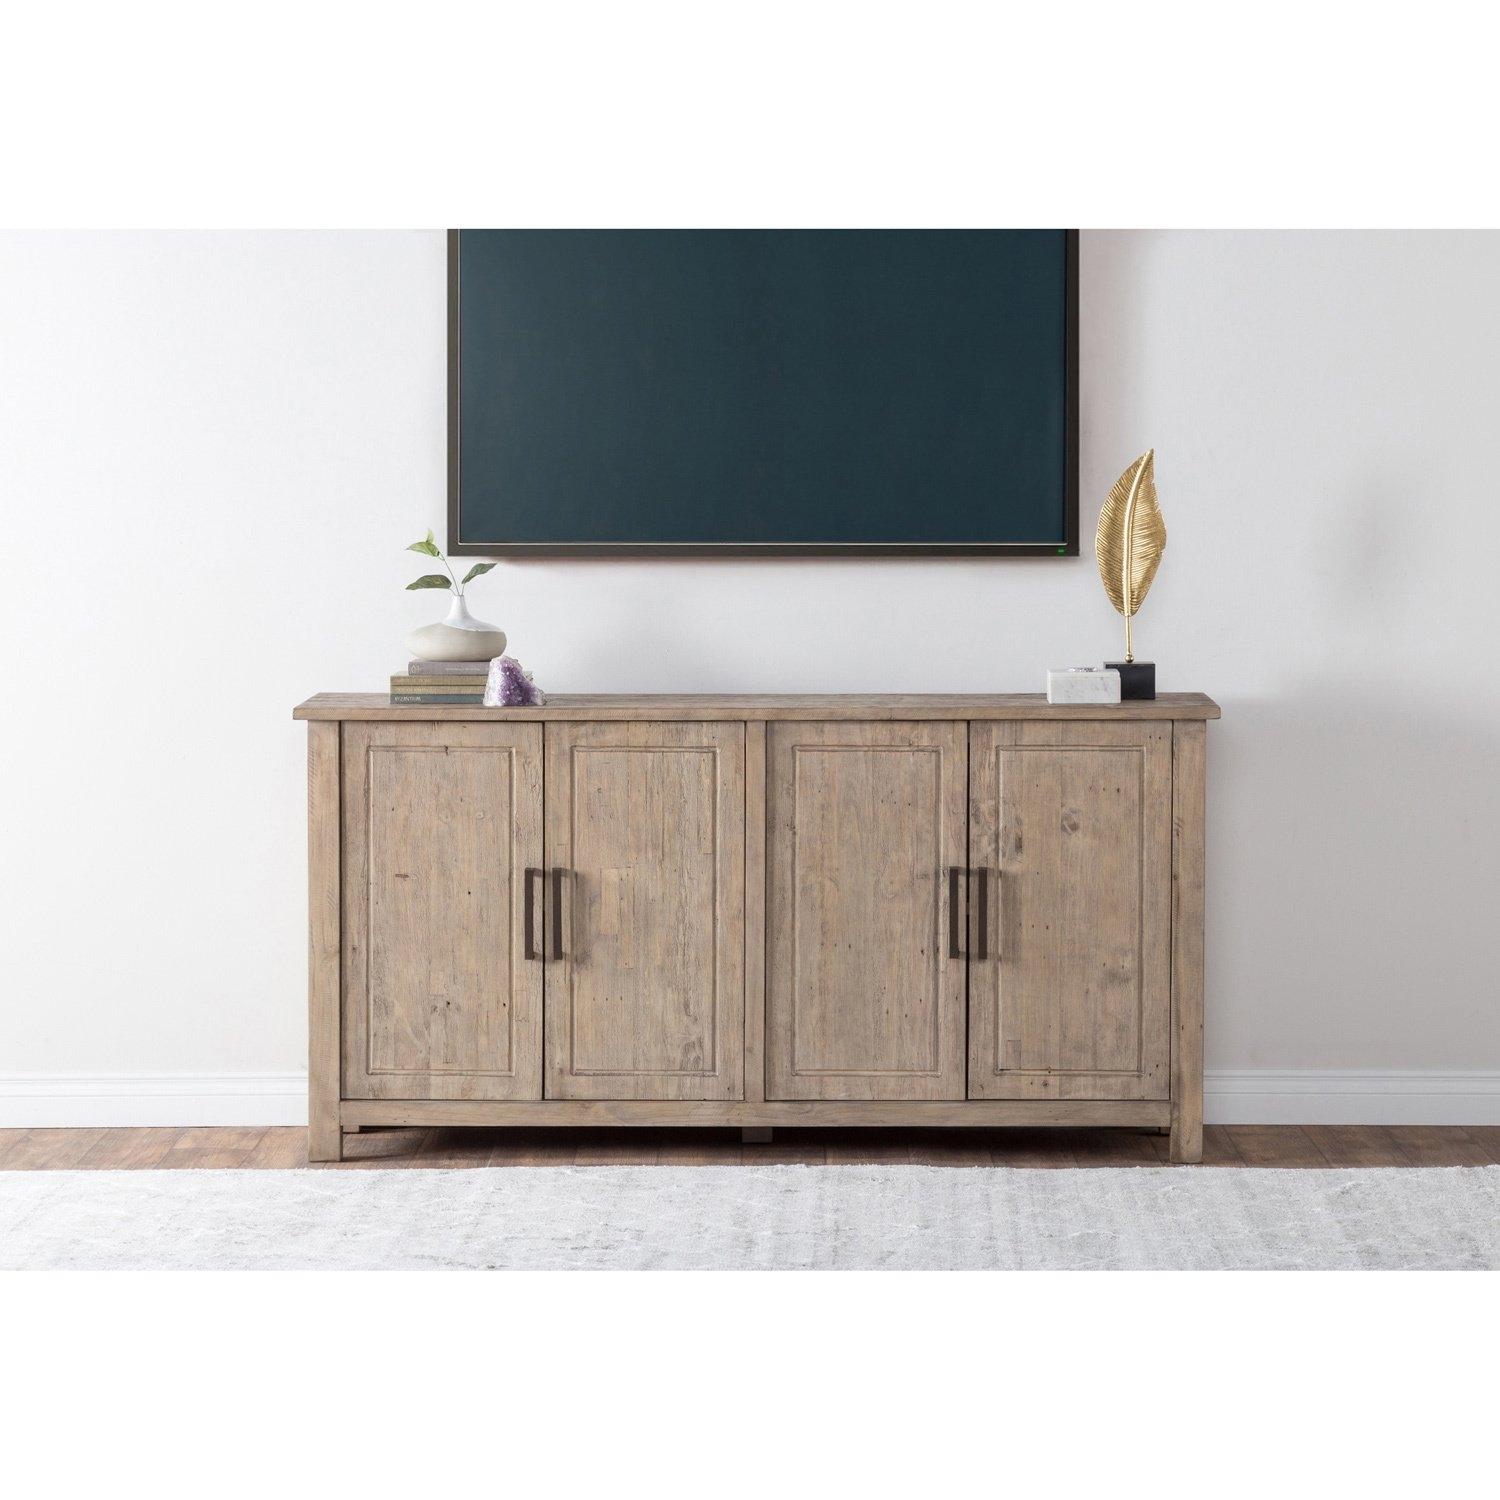 Shop Aires Reclaimed Wood 72-Inch Sideboardkosas Home - Free inside Reclaimed Pine & Iron 72 Inch Sideboards (Image 17 of 30)